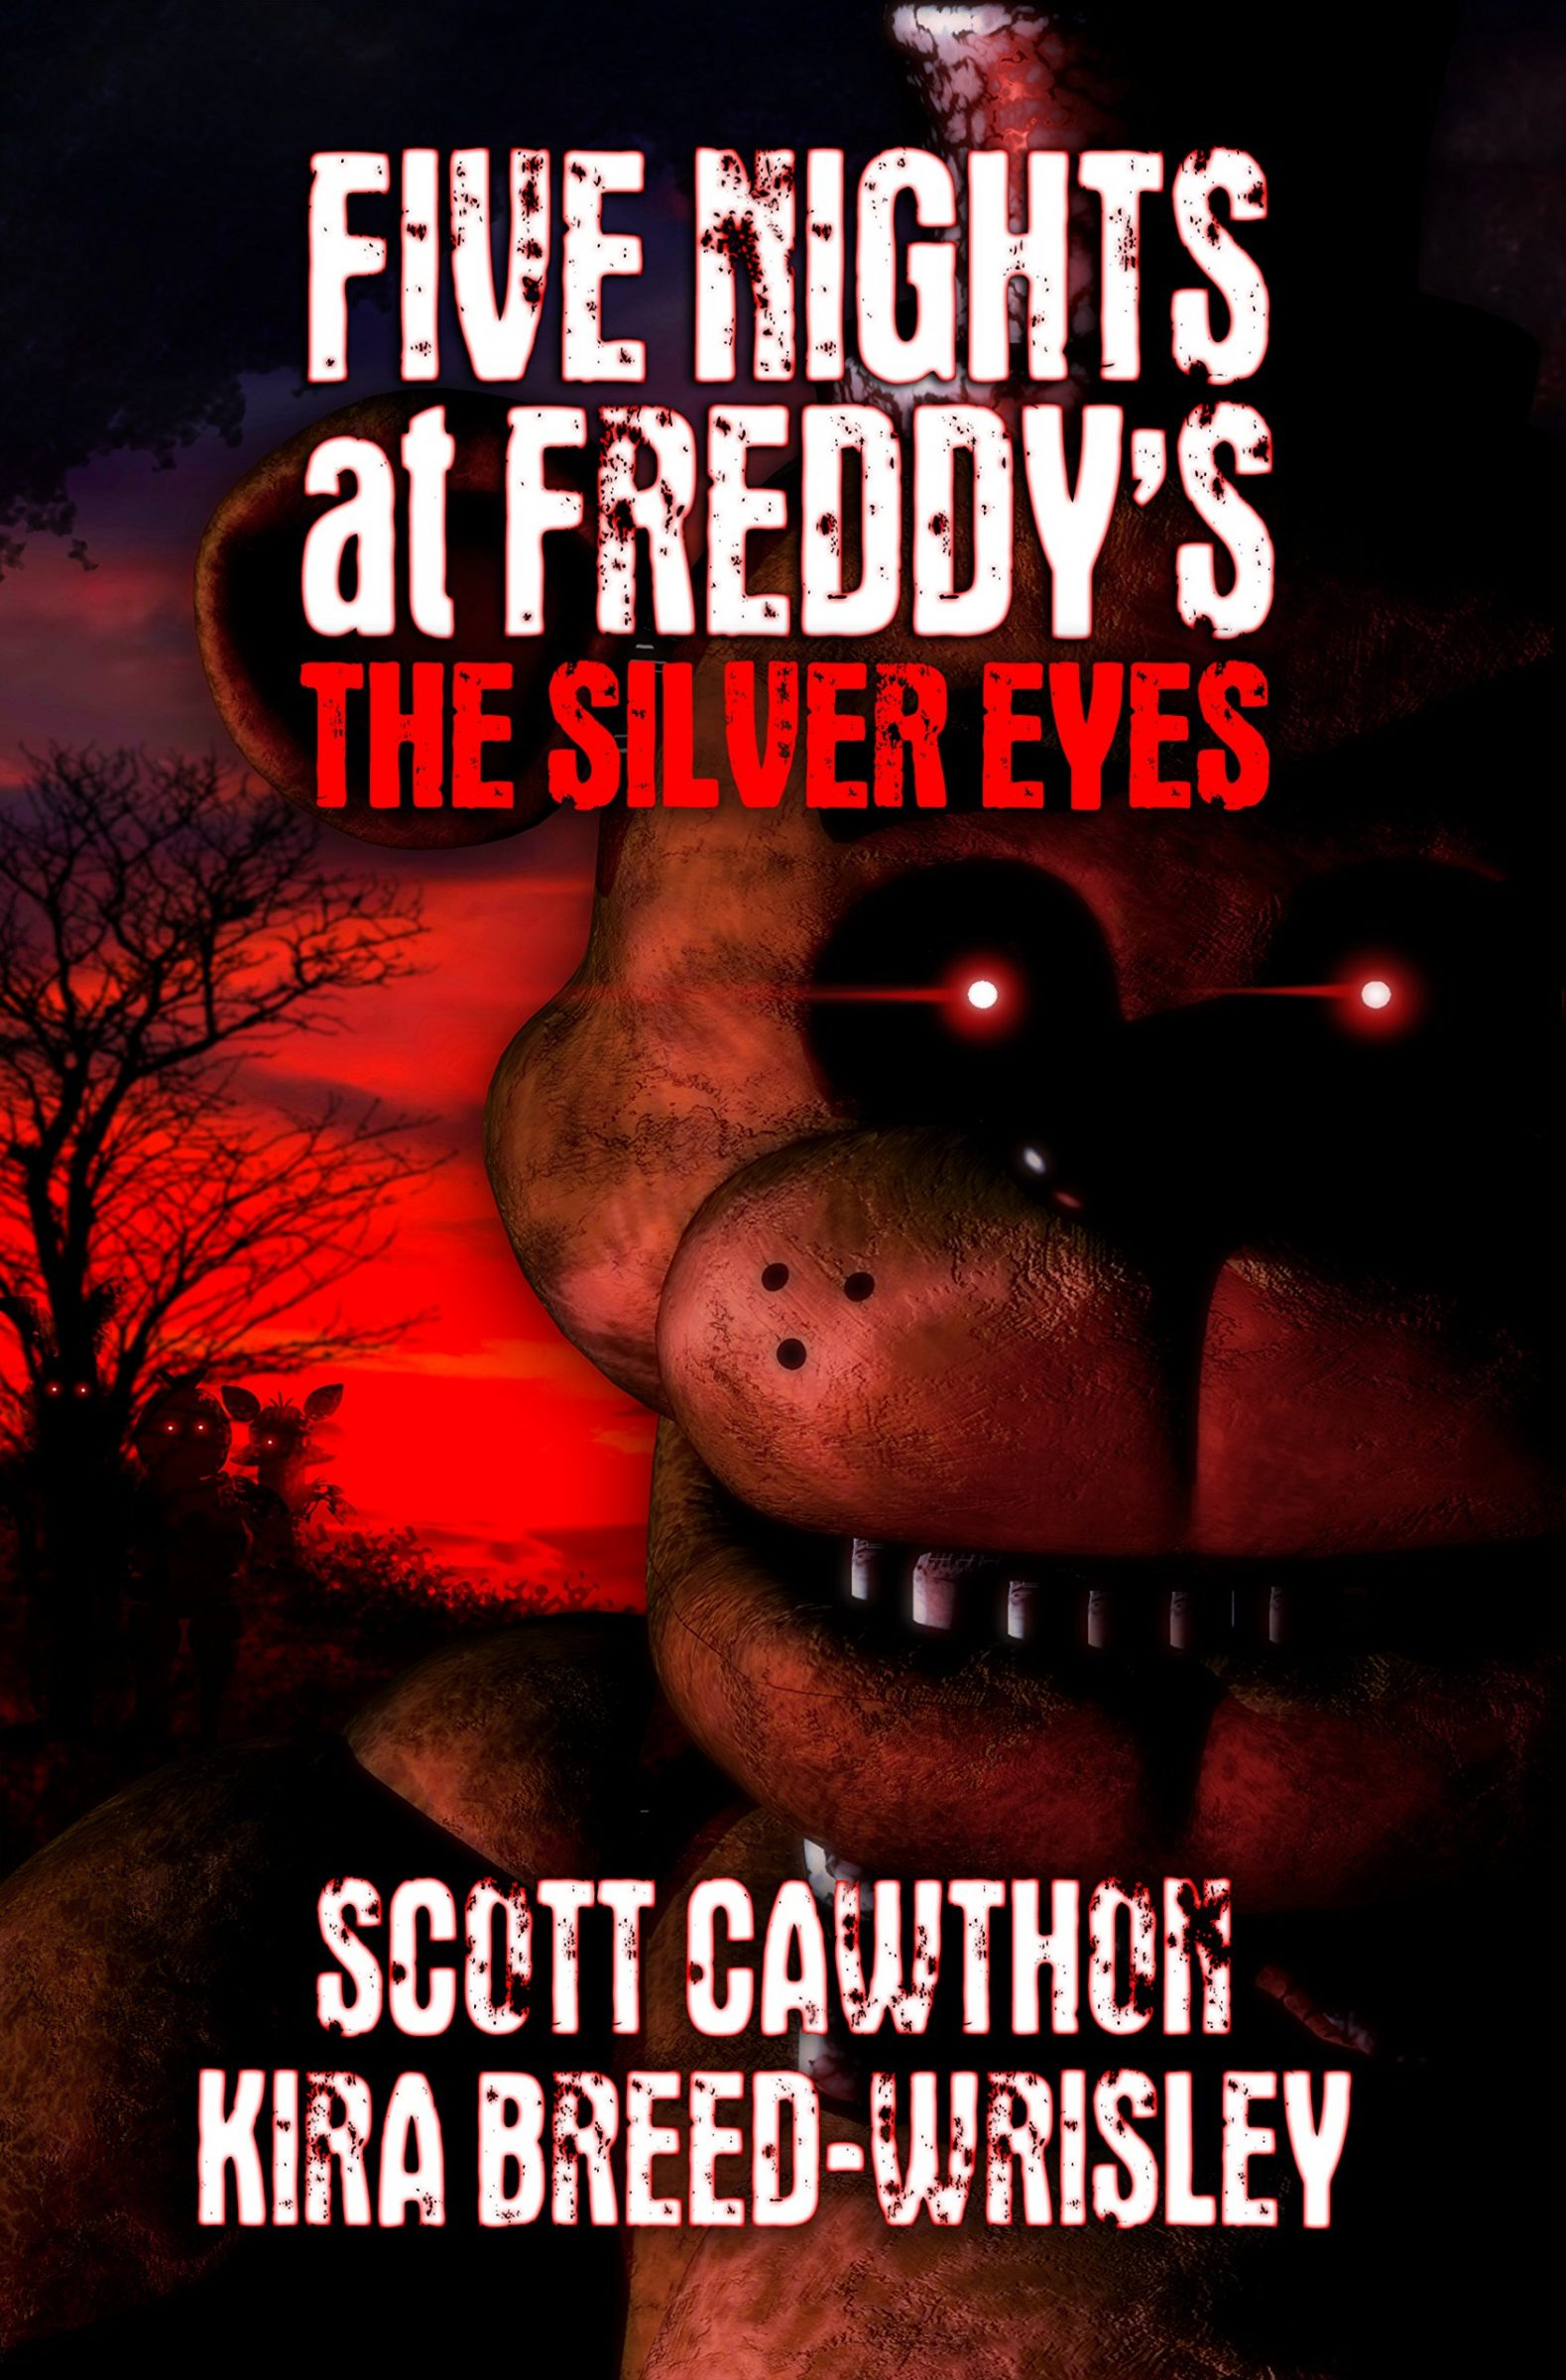 New York Times #1 Bestseller, Five Nights at Freddy's